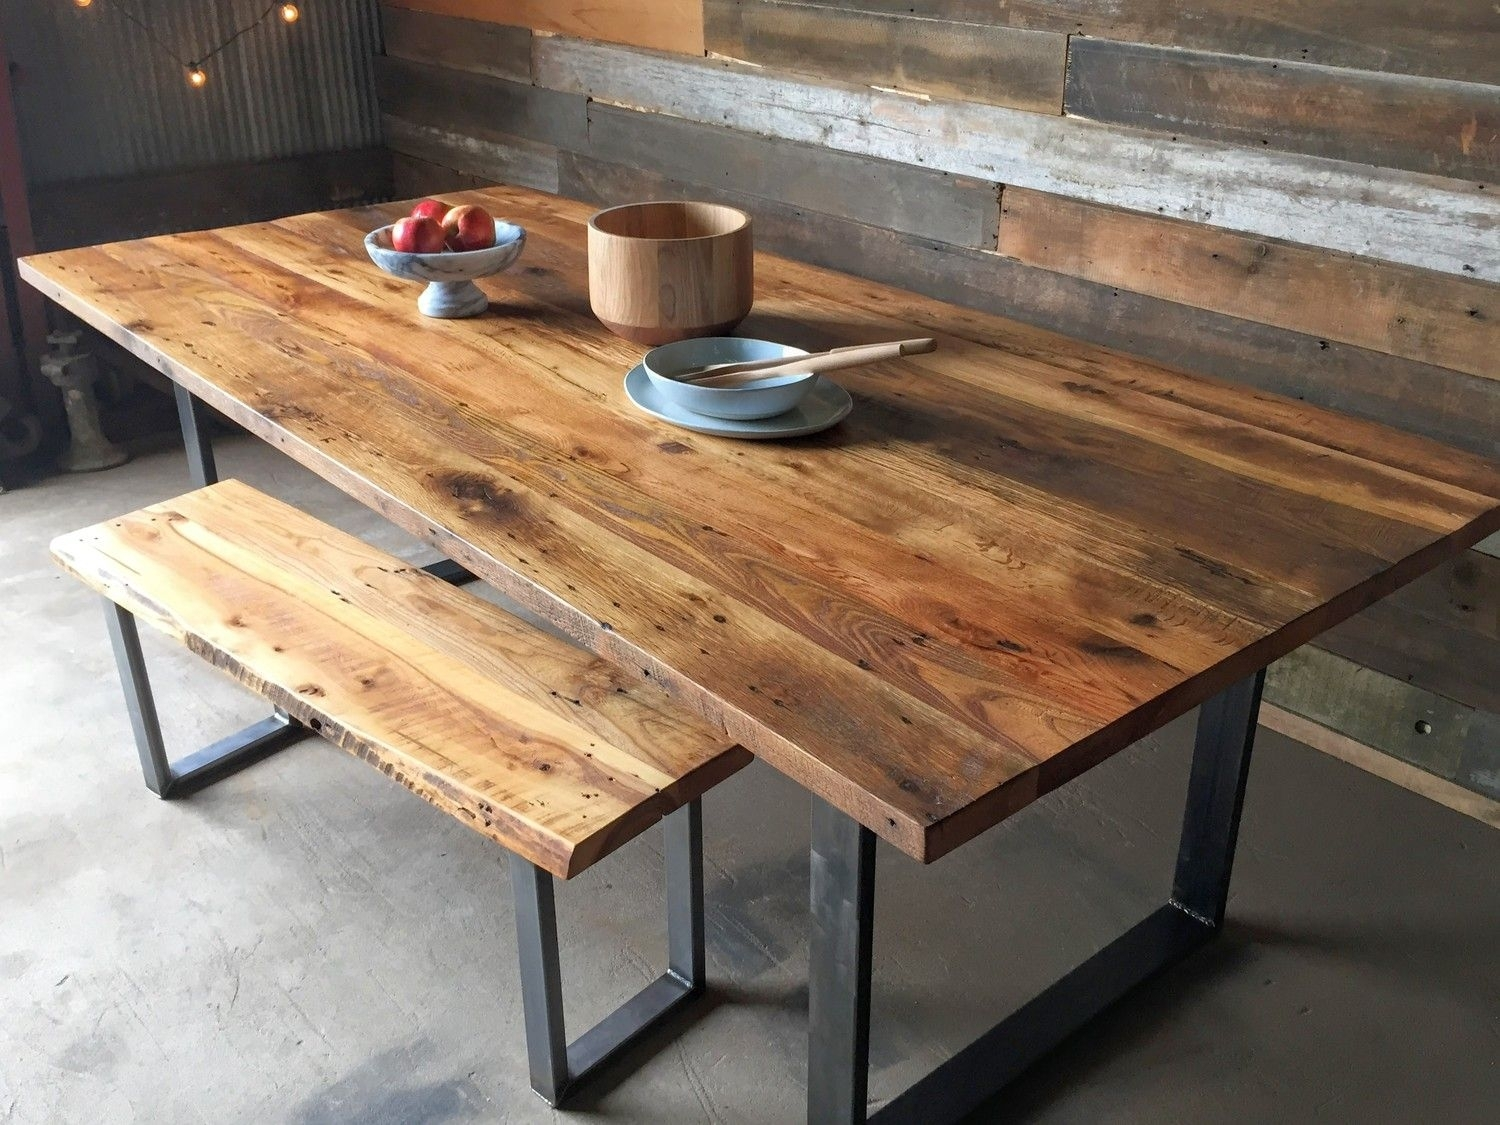 Industrial Modern Dining Table / U Shaped Metal Legs | Decor Throughout Latest Iron And Wood Dining Tables (Photo 3 of 20)